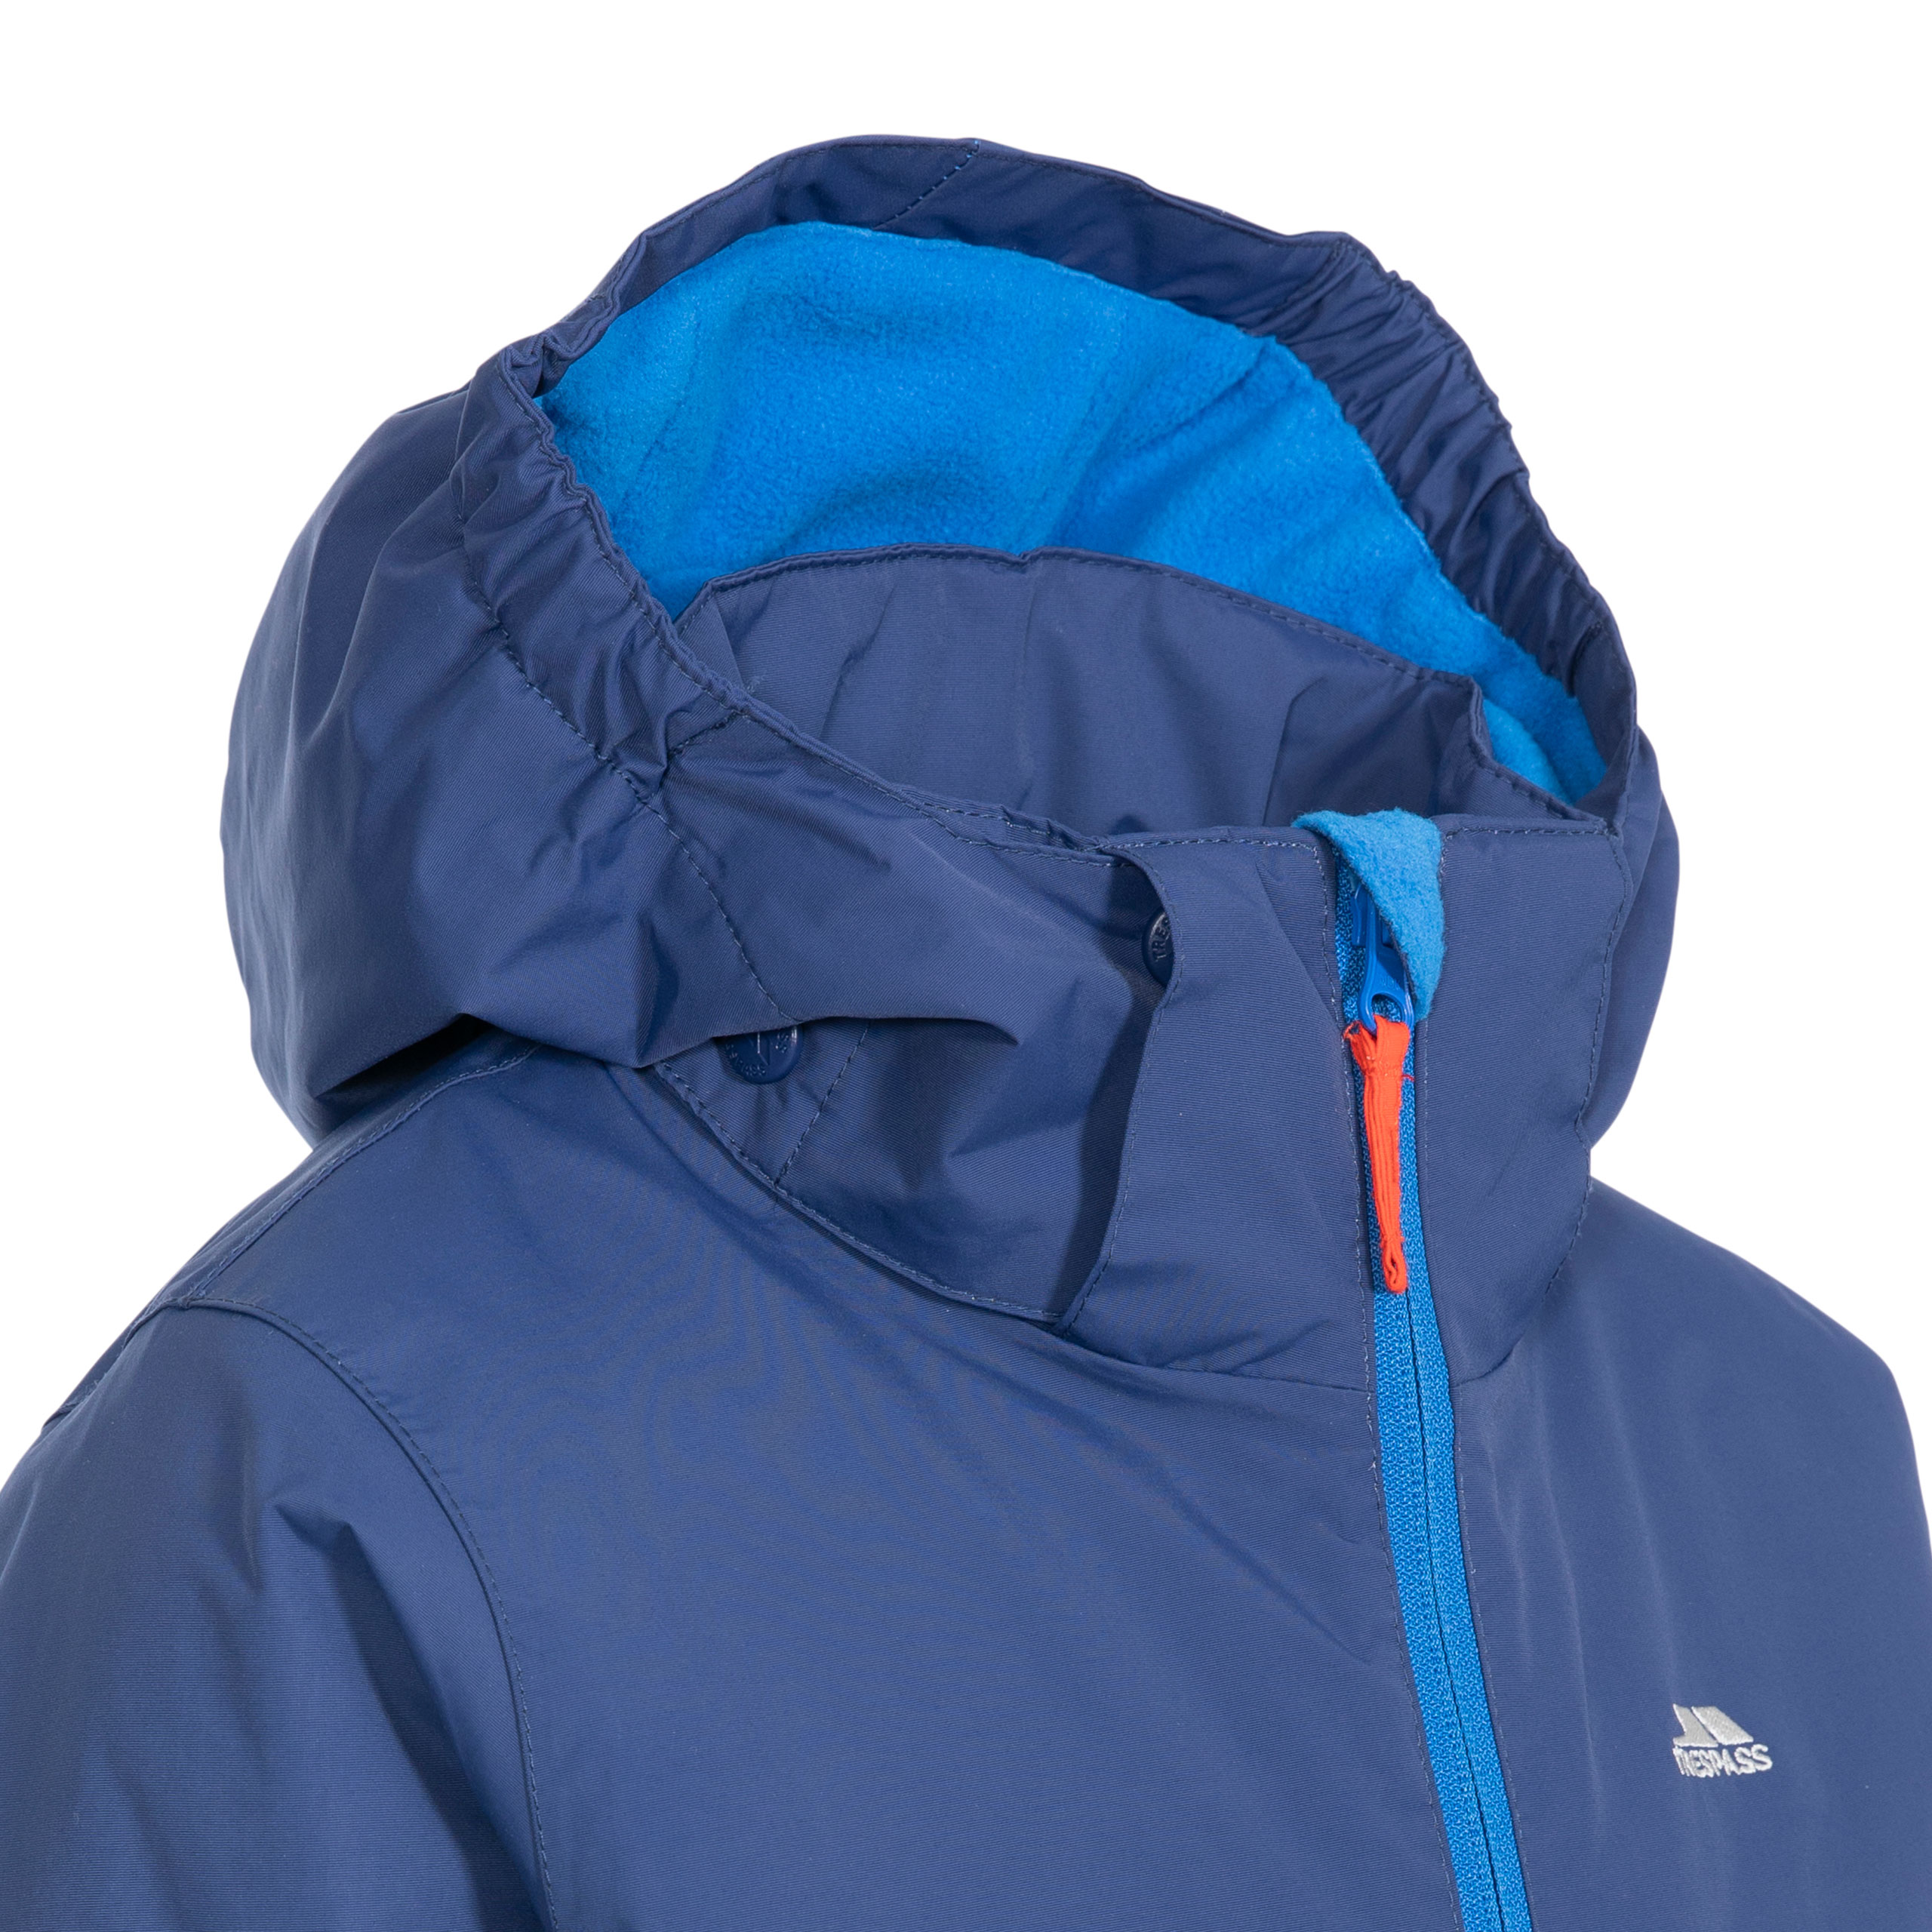 Trespass-Boys-Ski-Jacket-Waterproof-Blue-Hooded-Warm-Coat-Kids-2-12-Years thumbnail 14